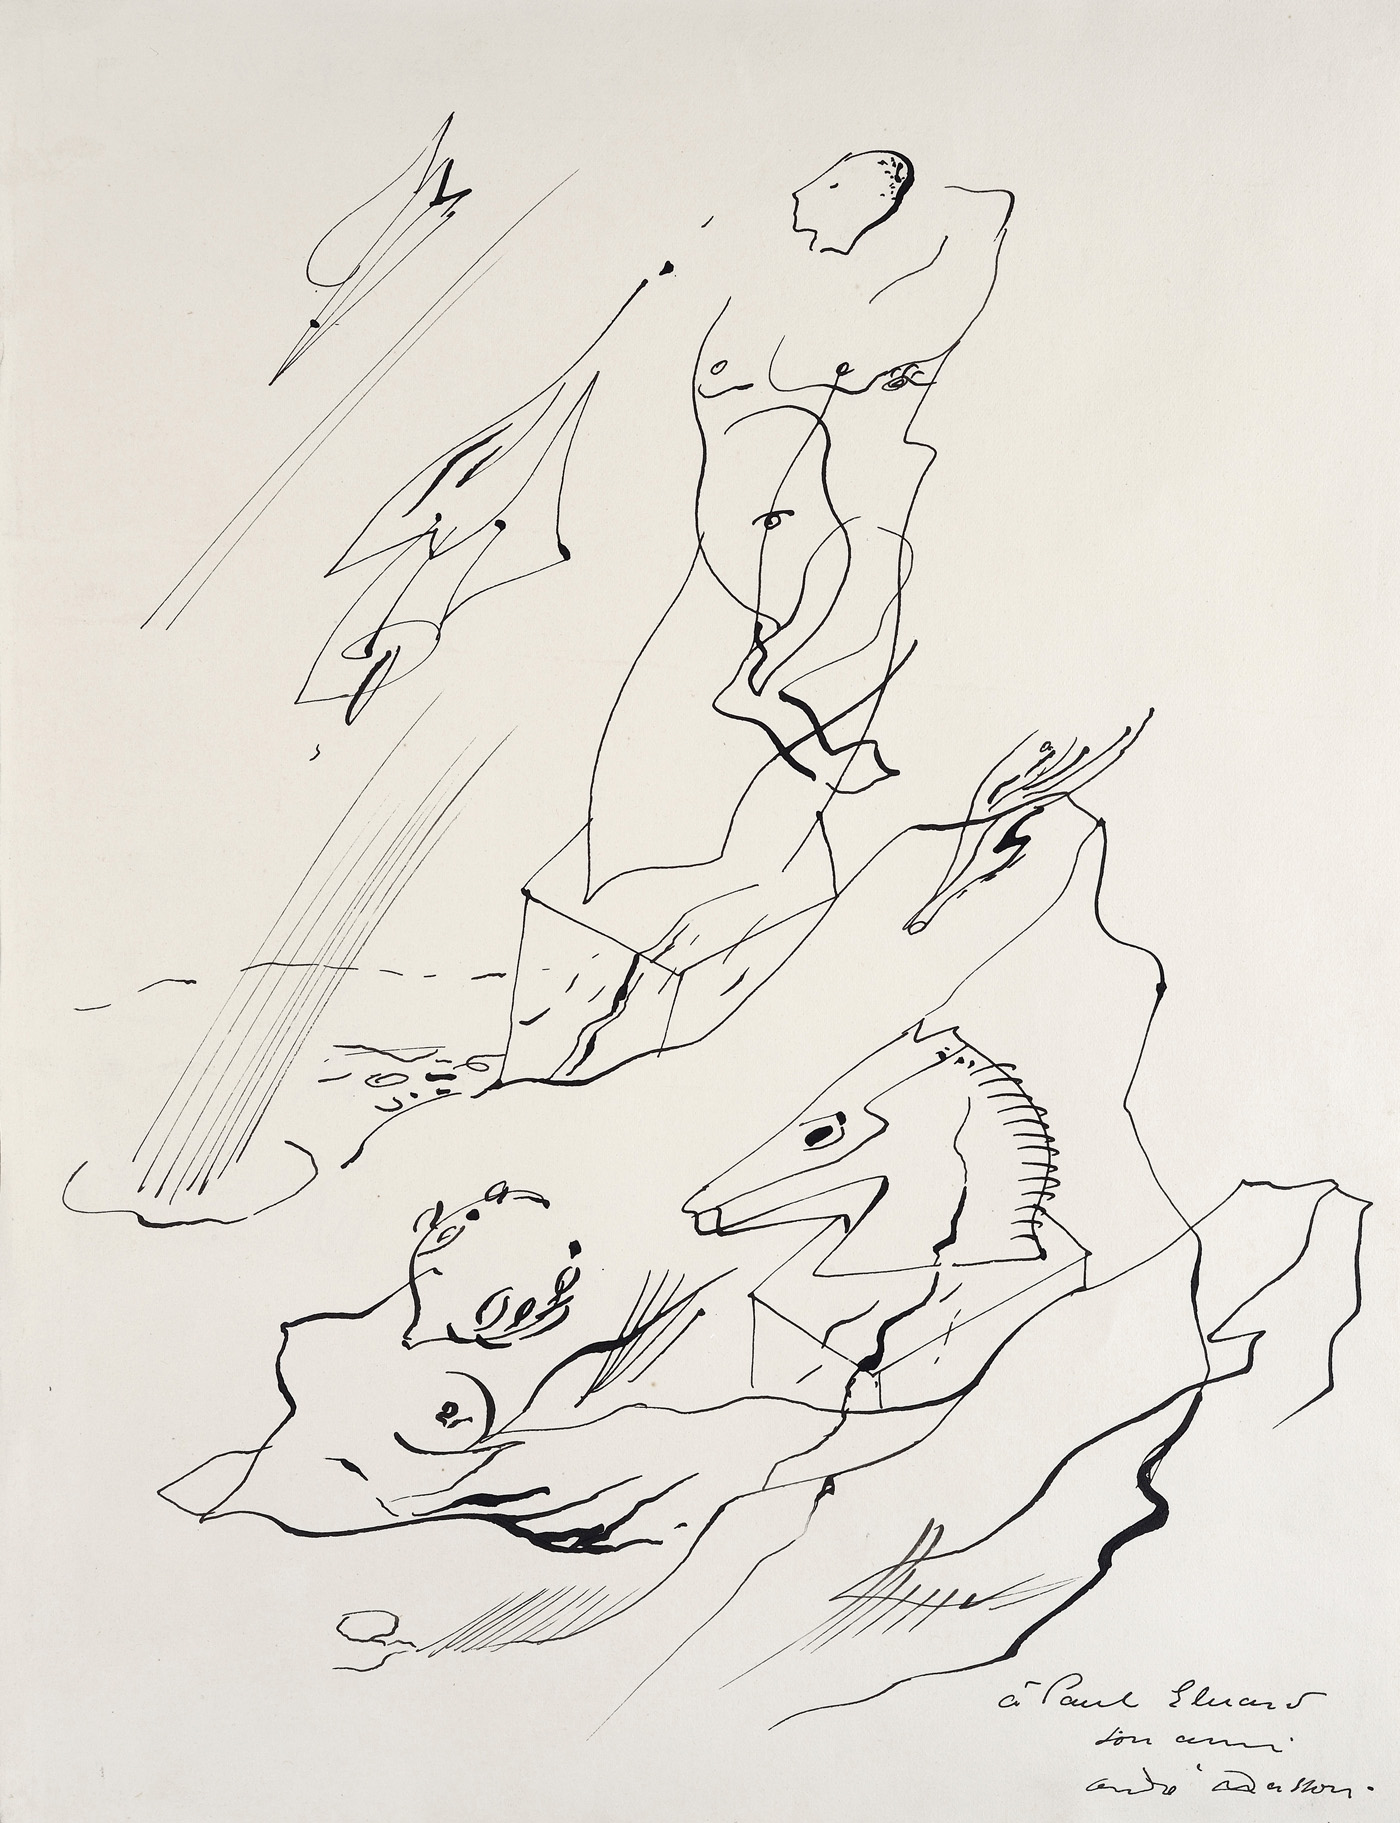 André Masson, A Paul Éluard, 1924 (courtesy of Galerie Natalie Seroussi)